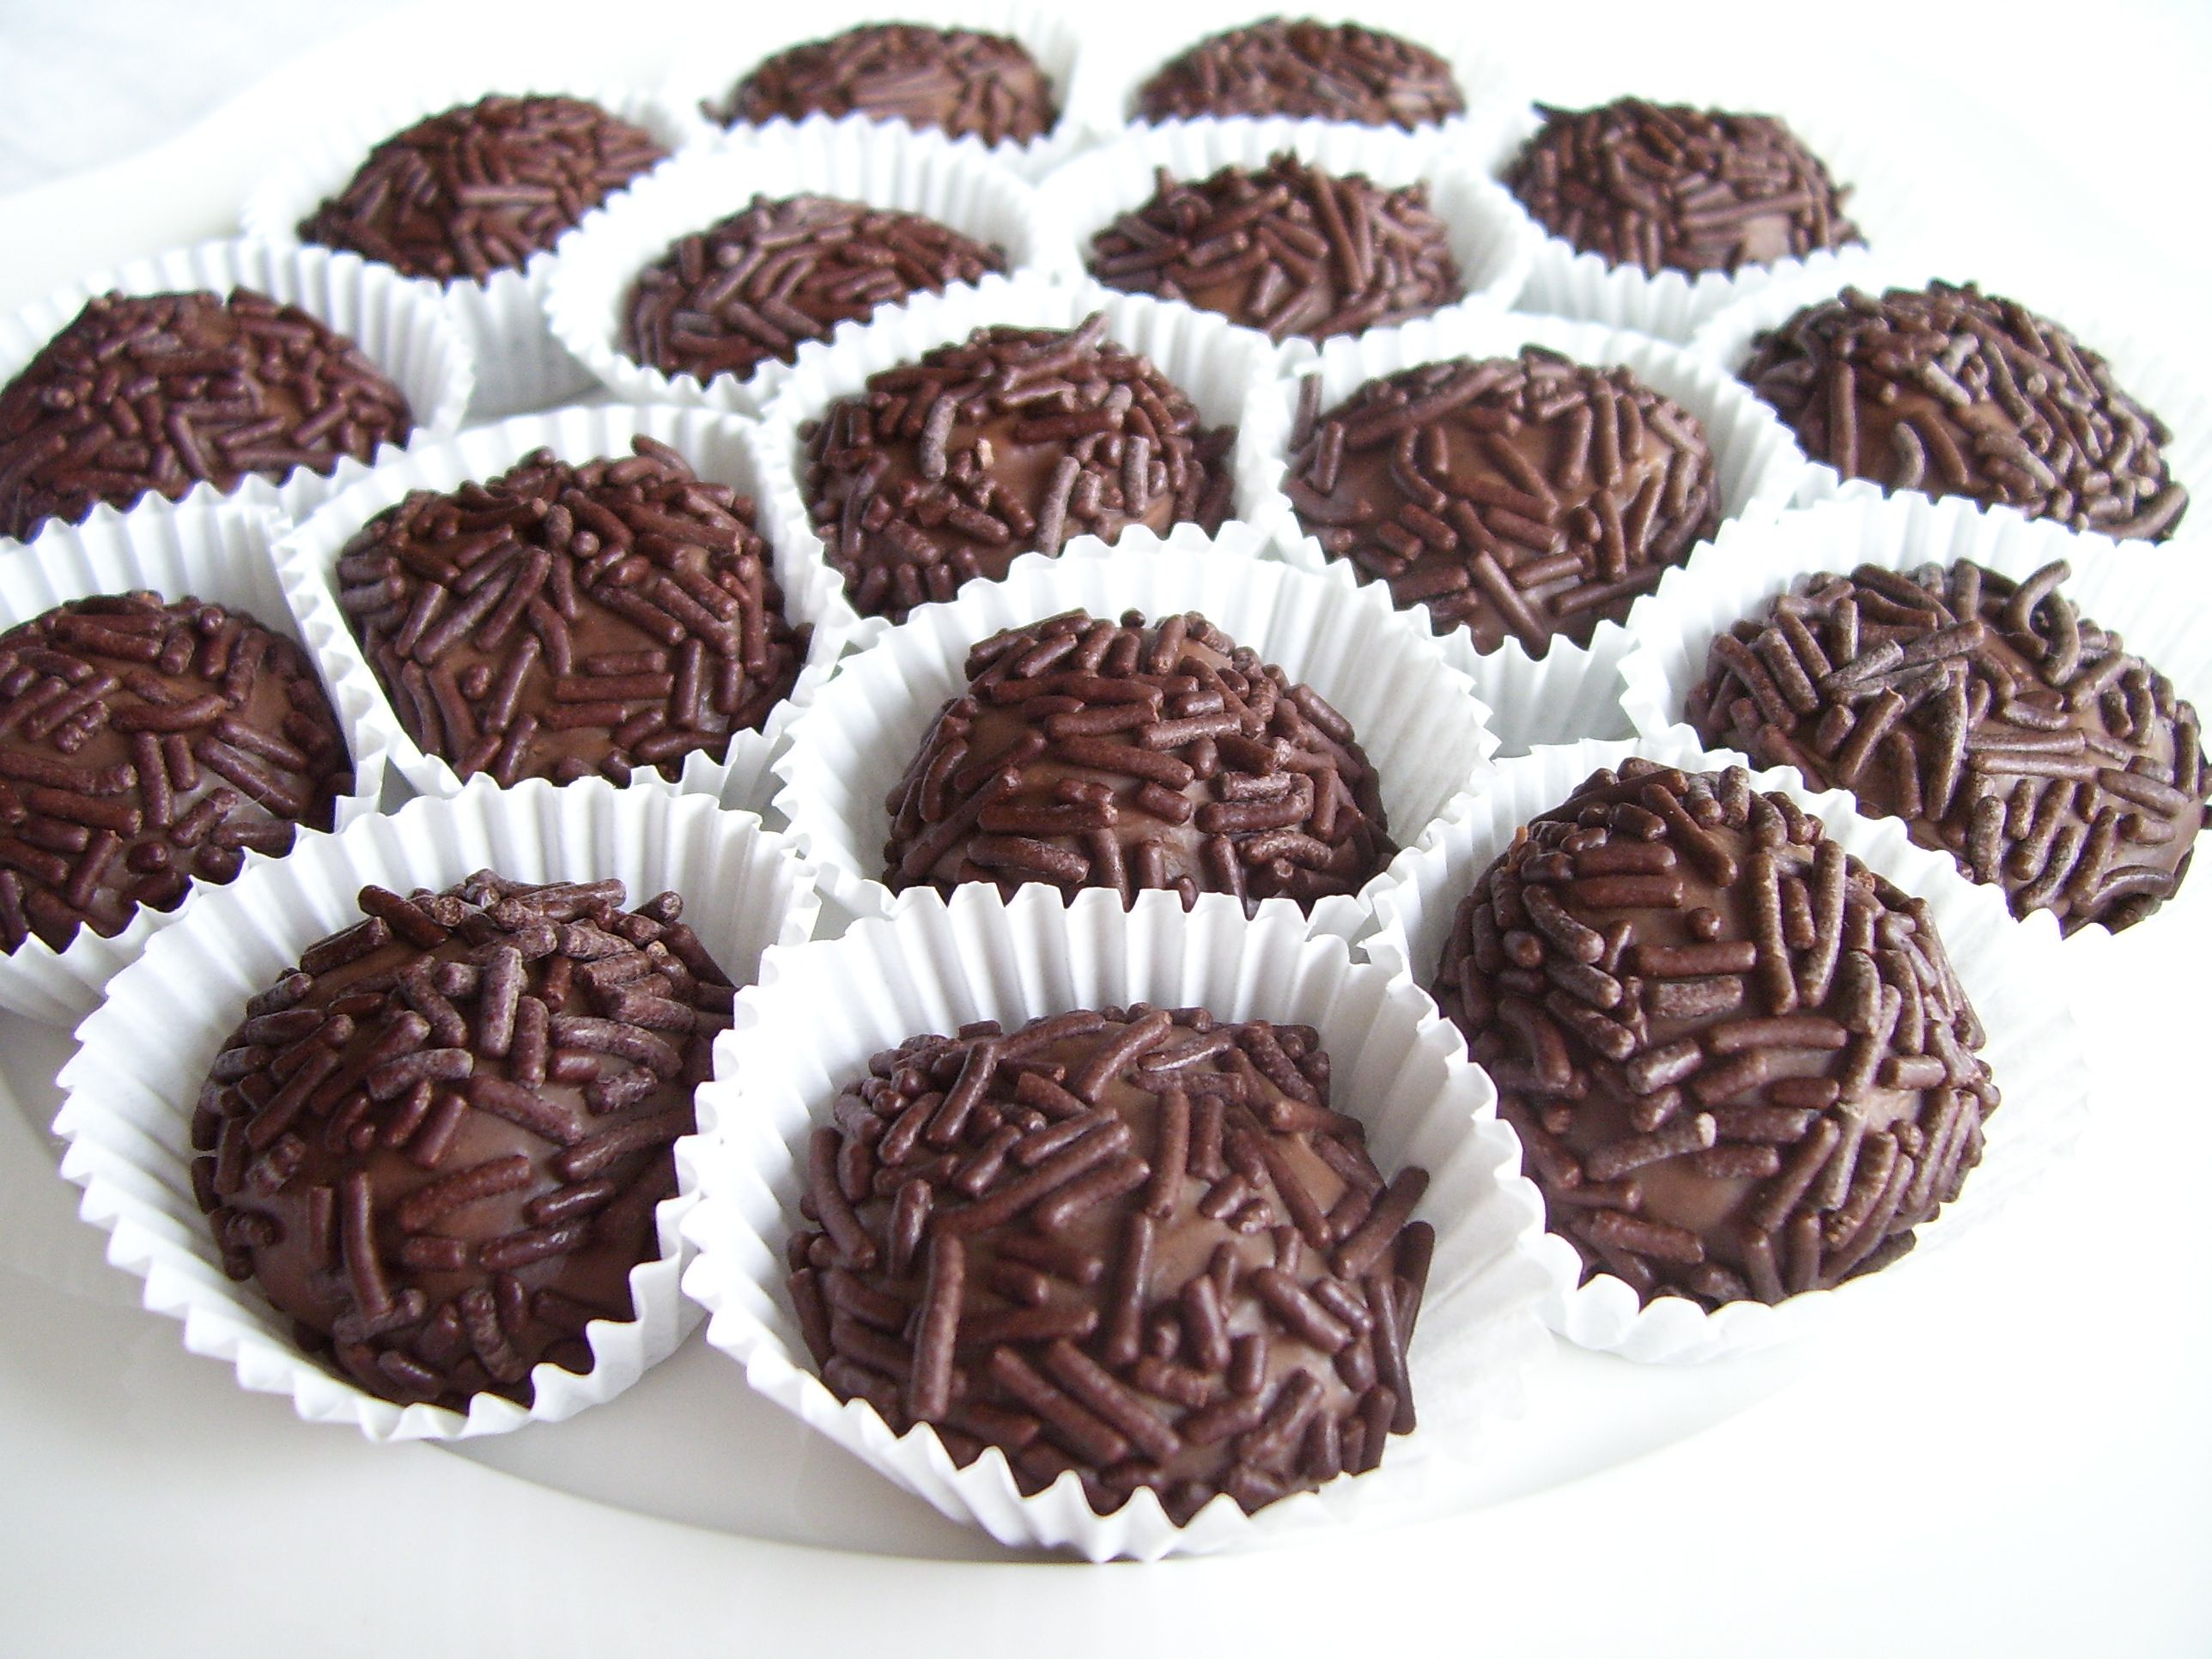 Brazilian Chocolate Truffle Brigadeiro Recipe Fun Desserts Food Paleo Sweets